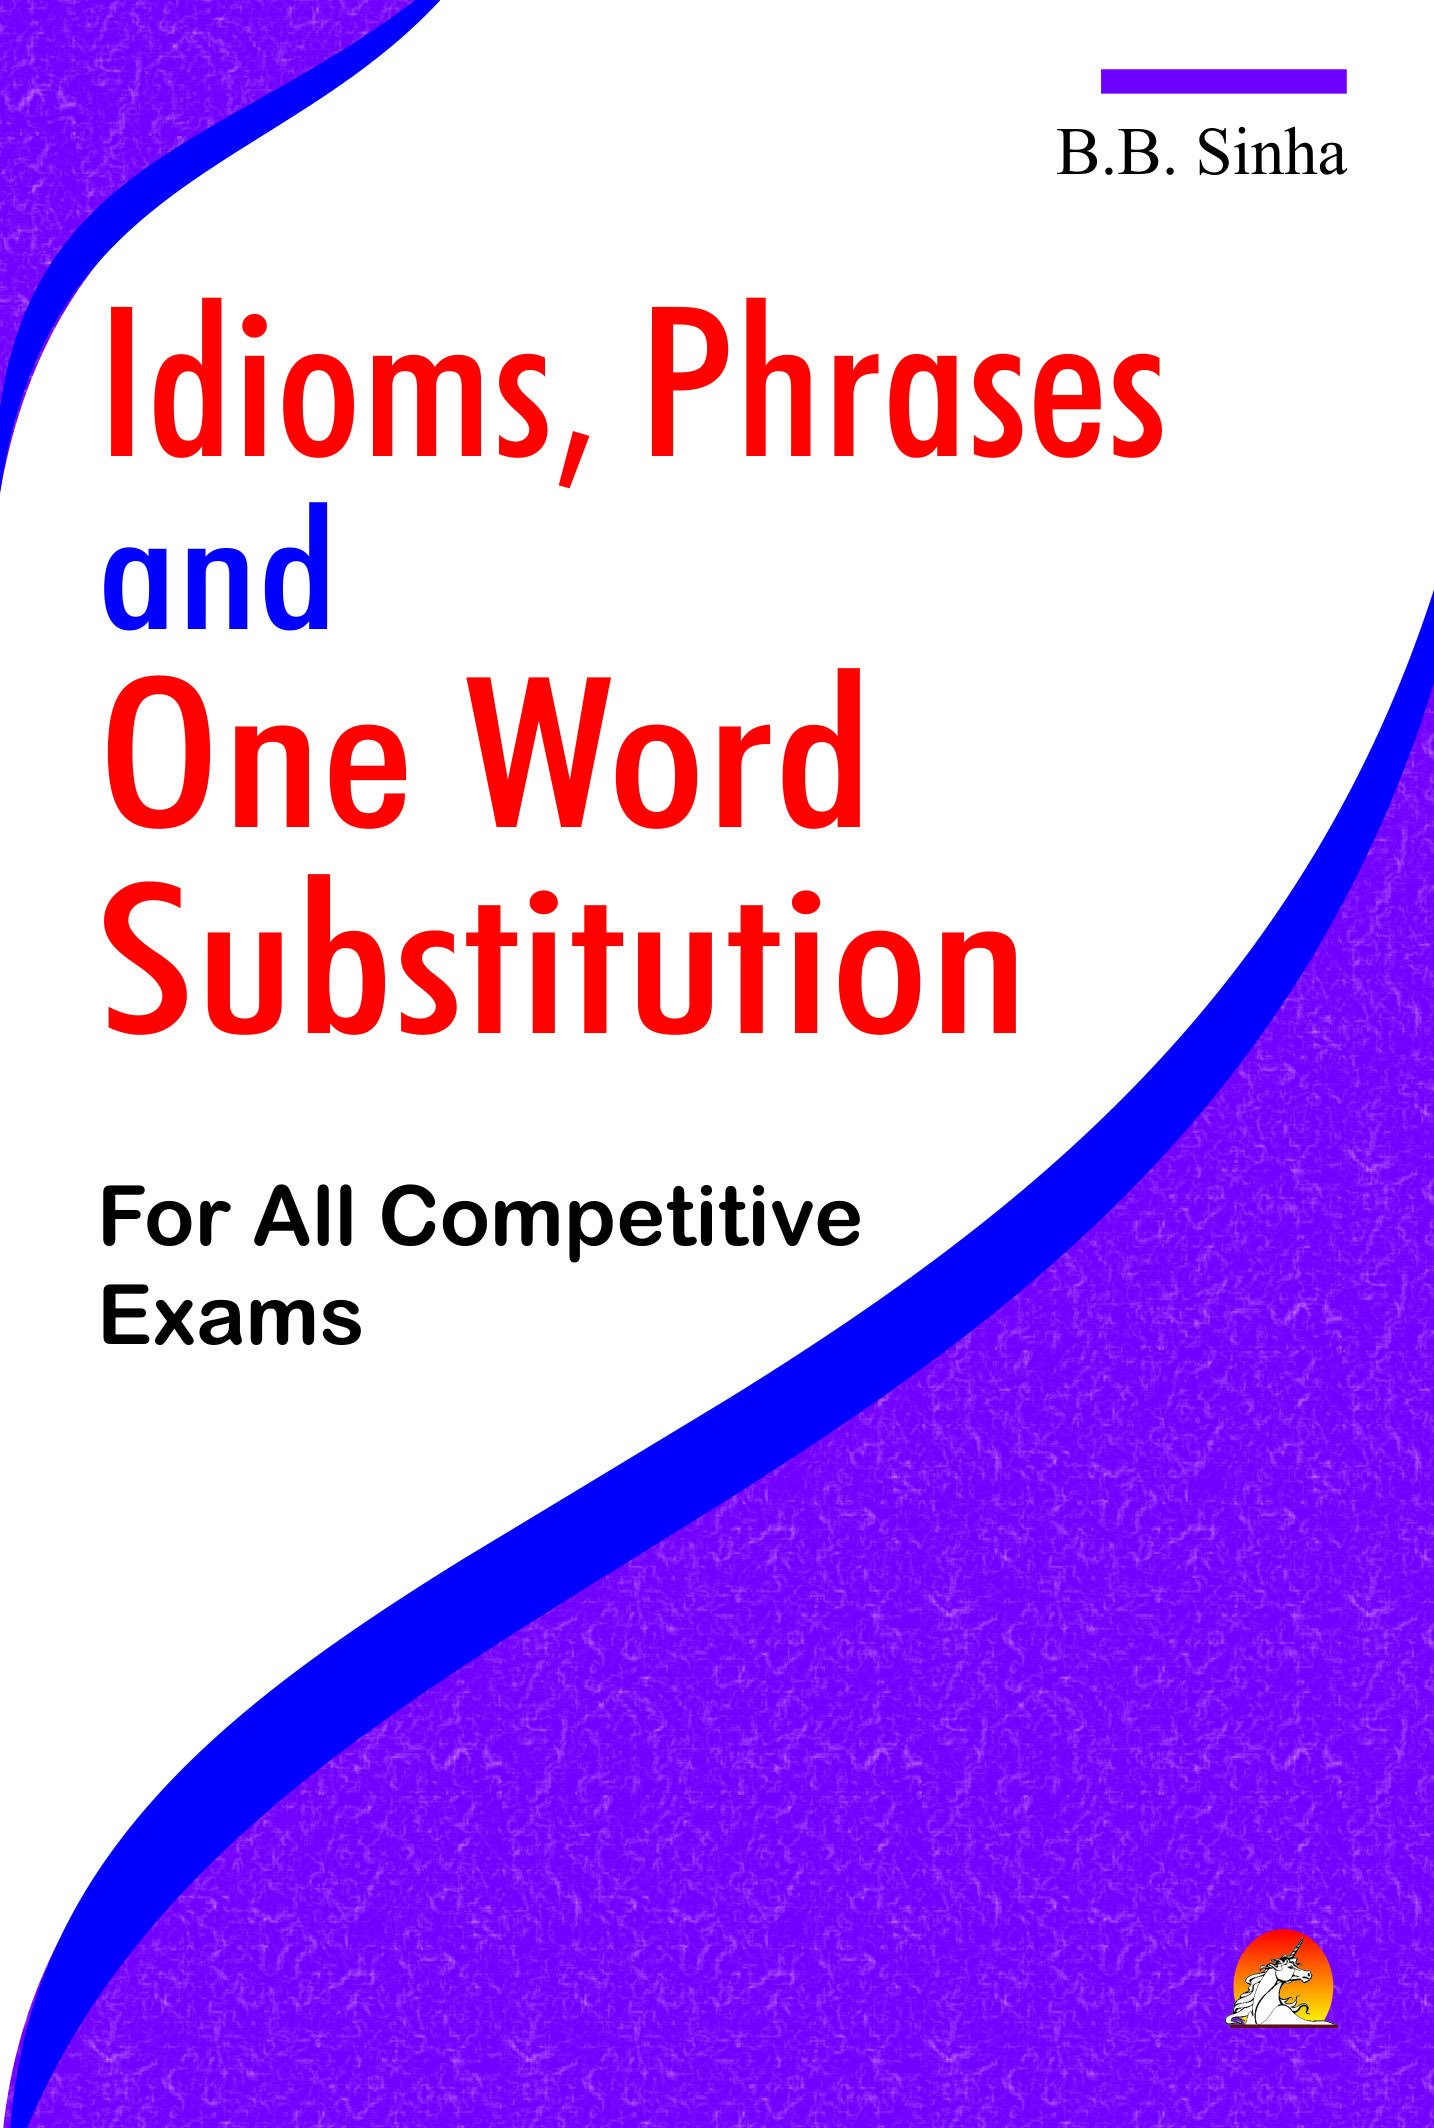 Descriptive For Competitive Exam Complete PDF